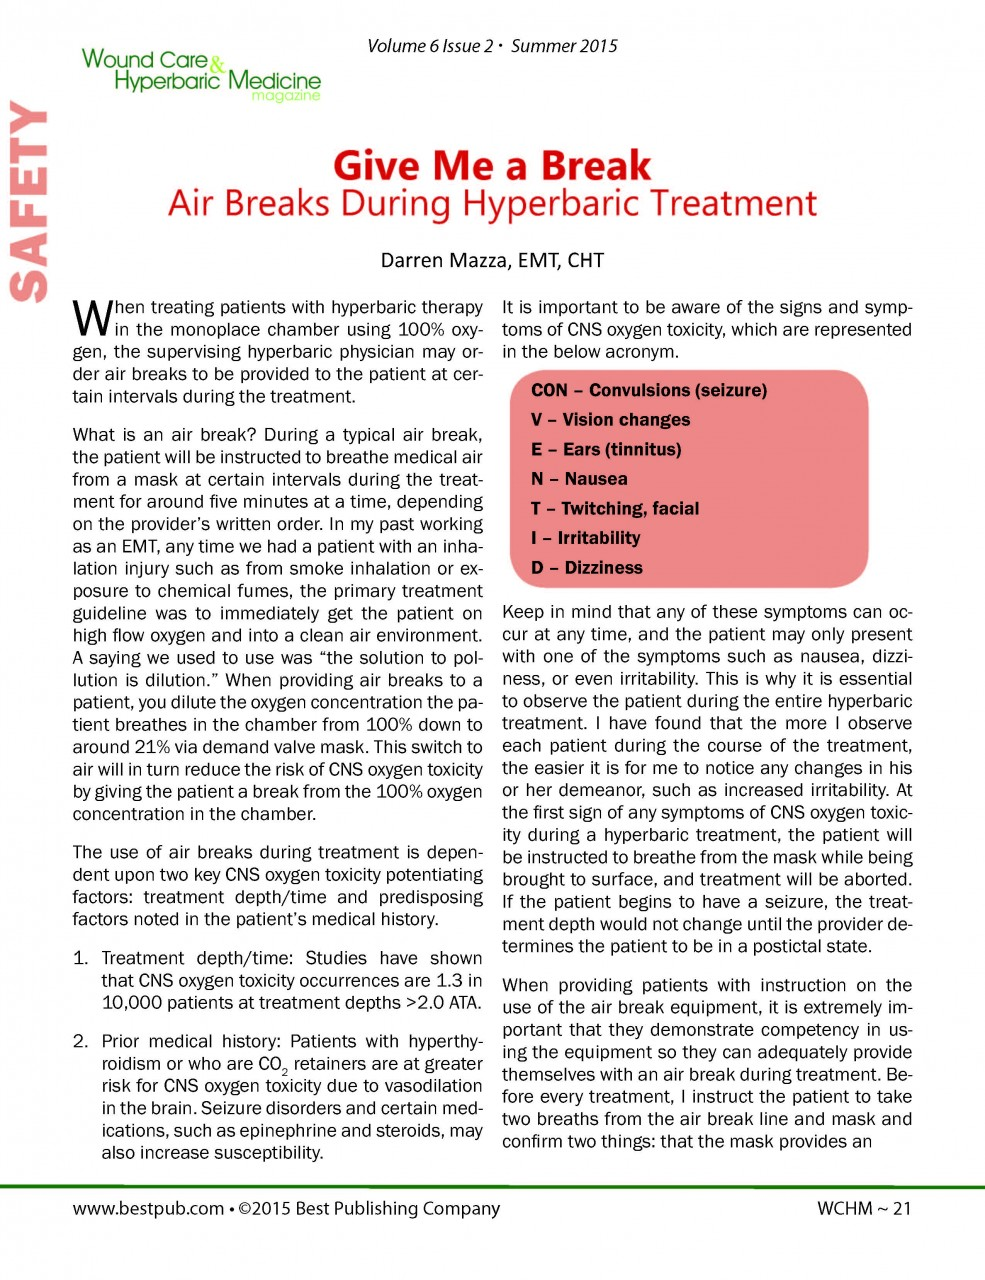 Air Breaks During Hyperbaric Treatment by Darren Mazza, EMT, CHT